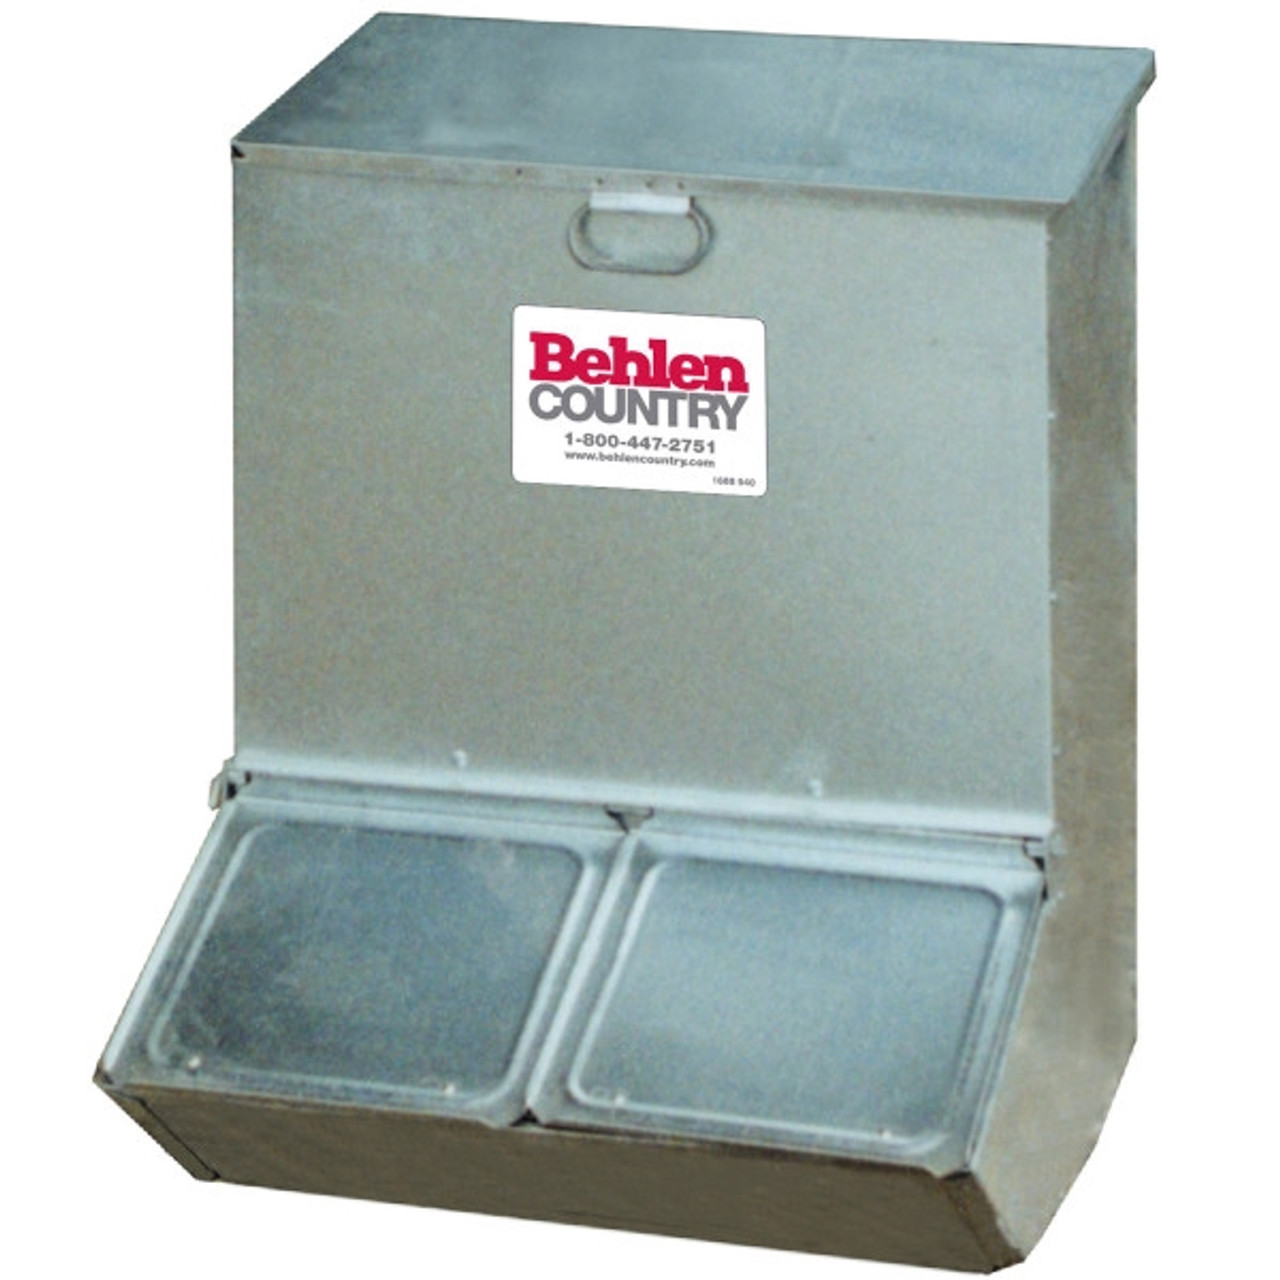 Behlen Economy Hog Feeders